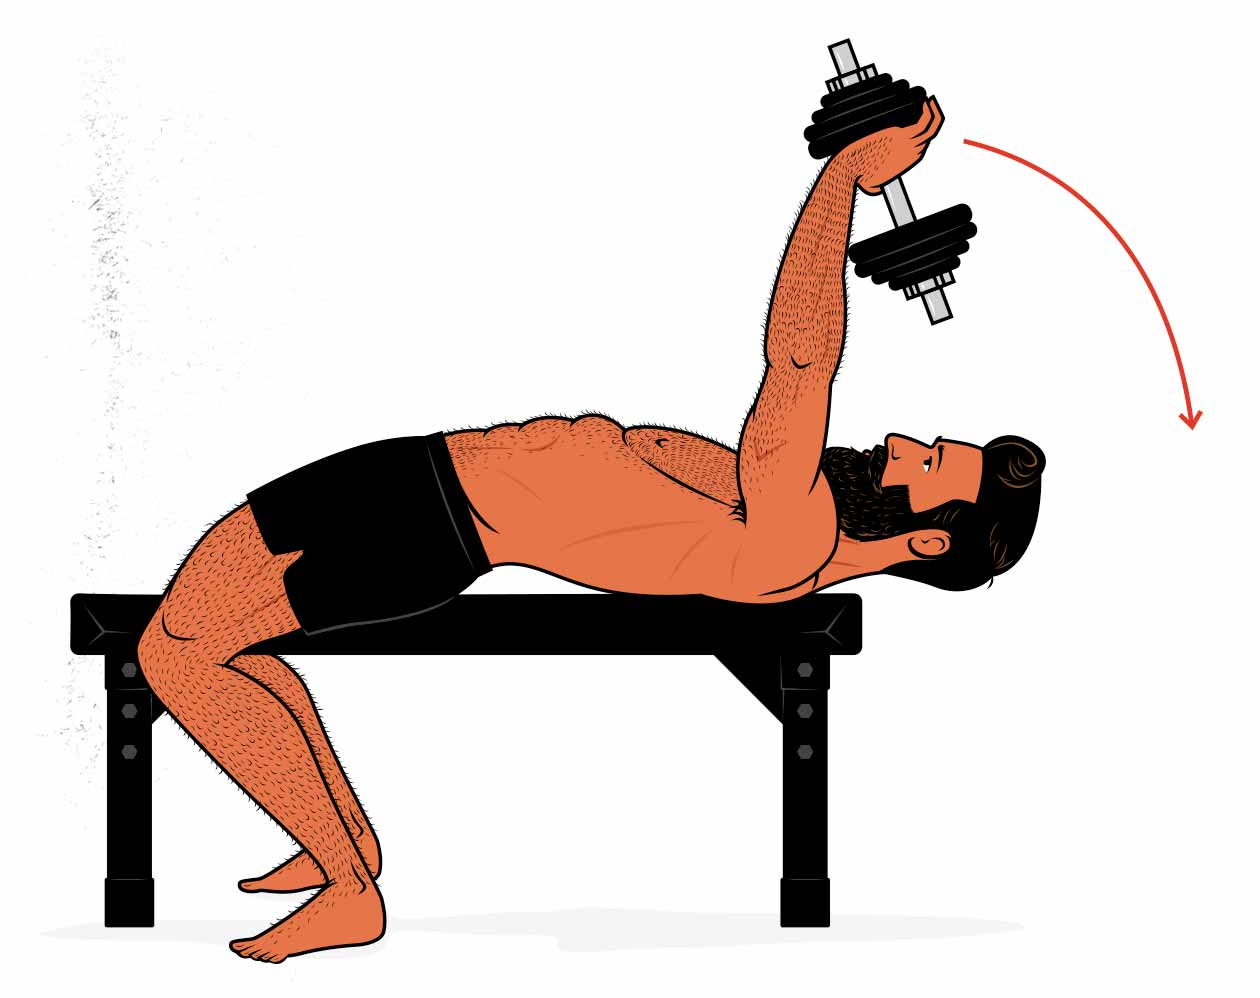 Illustration showing how to do the lat pulldown exercise.